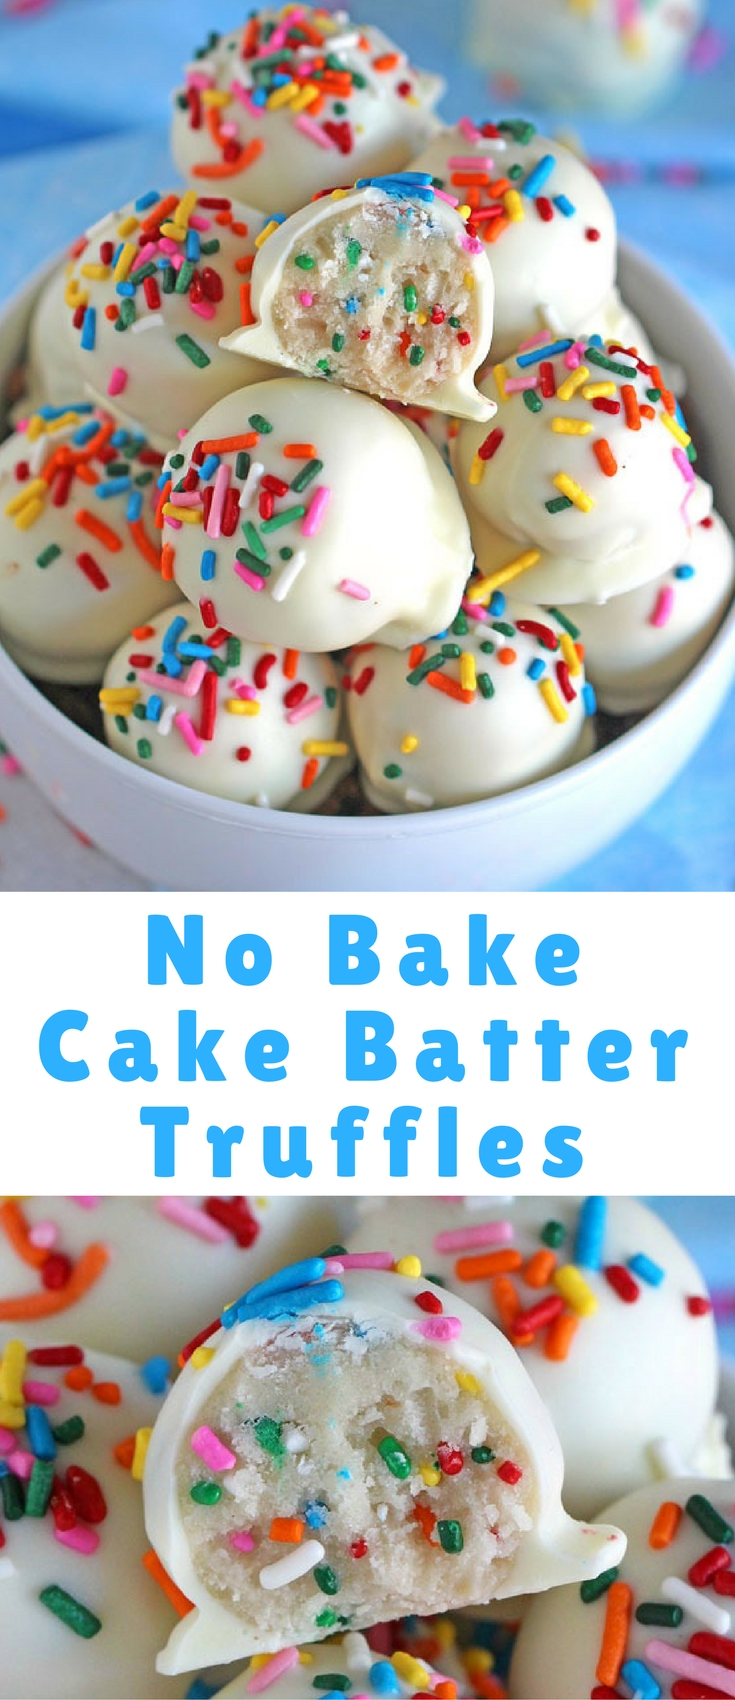 No Bake Cake Batter Truffles are very easy to make using funfetti cake mix. Loaded with lots of sprinkles and dipped in white chocolate, these are delicious.